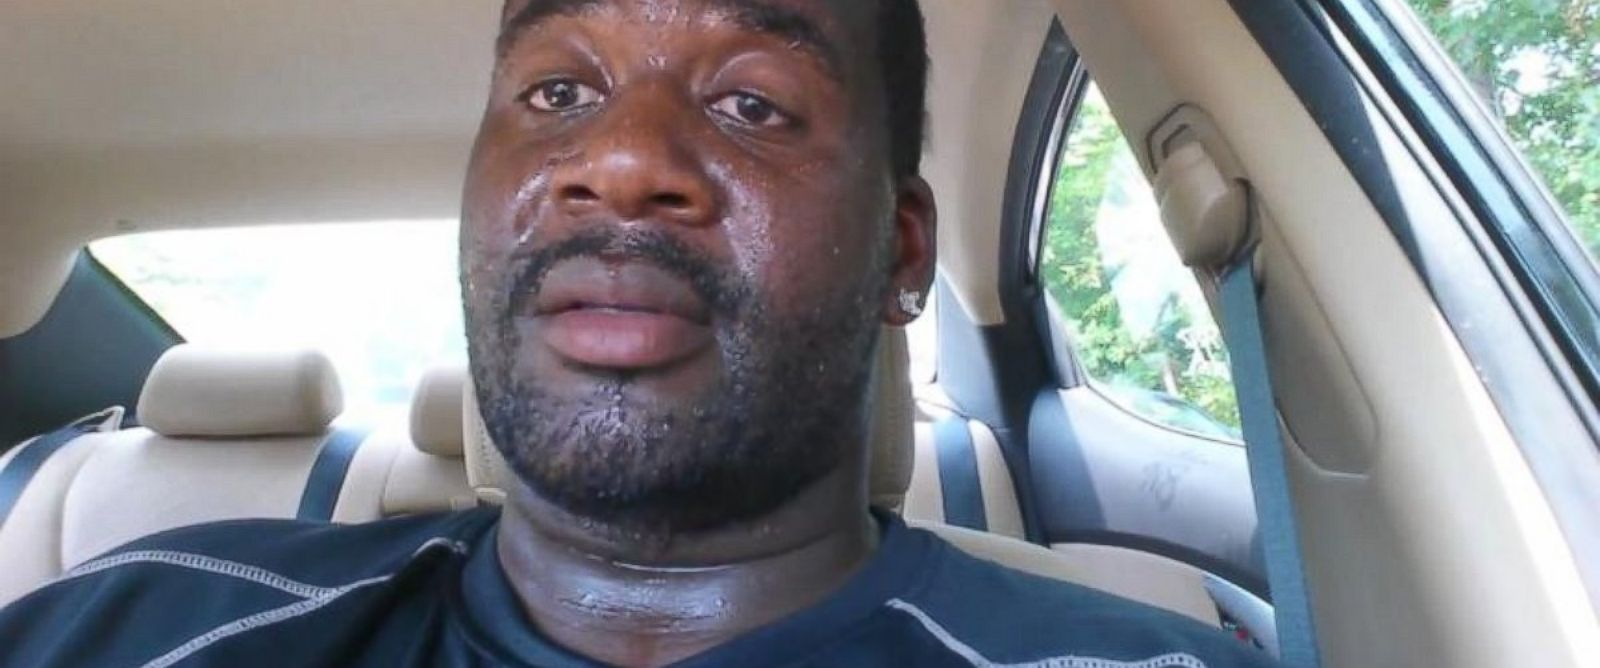 PHOTO: Terry Bartley videotaped himself in a hot car following the death of 22-month-old Cooper Harris, and uploaded the video to YouTube on June 20, 2014.